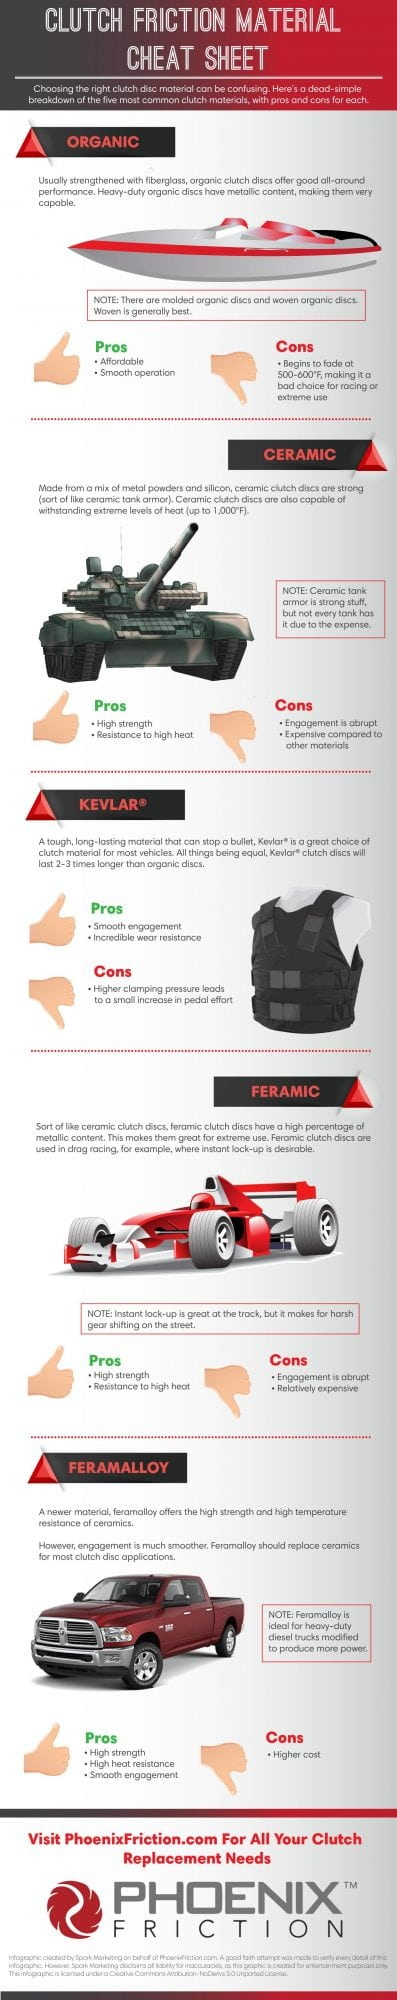 Final_Clutch_Friction_Materials_Infographic(1)